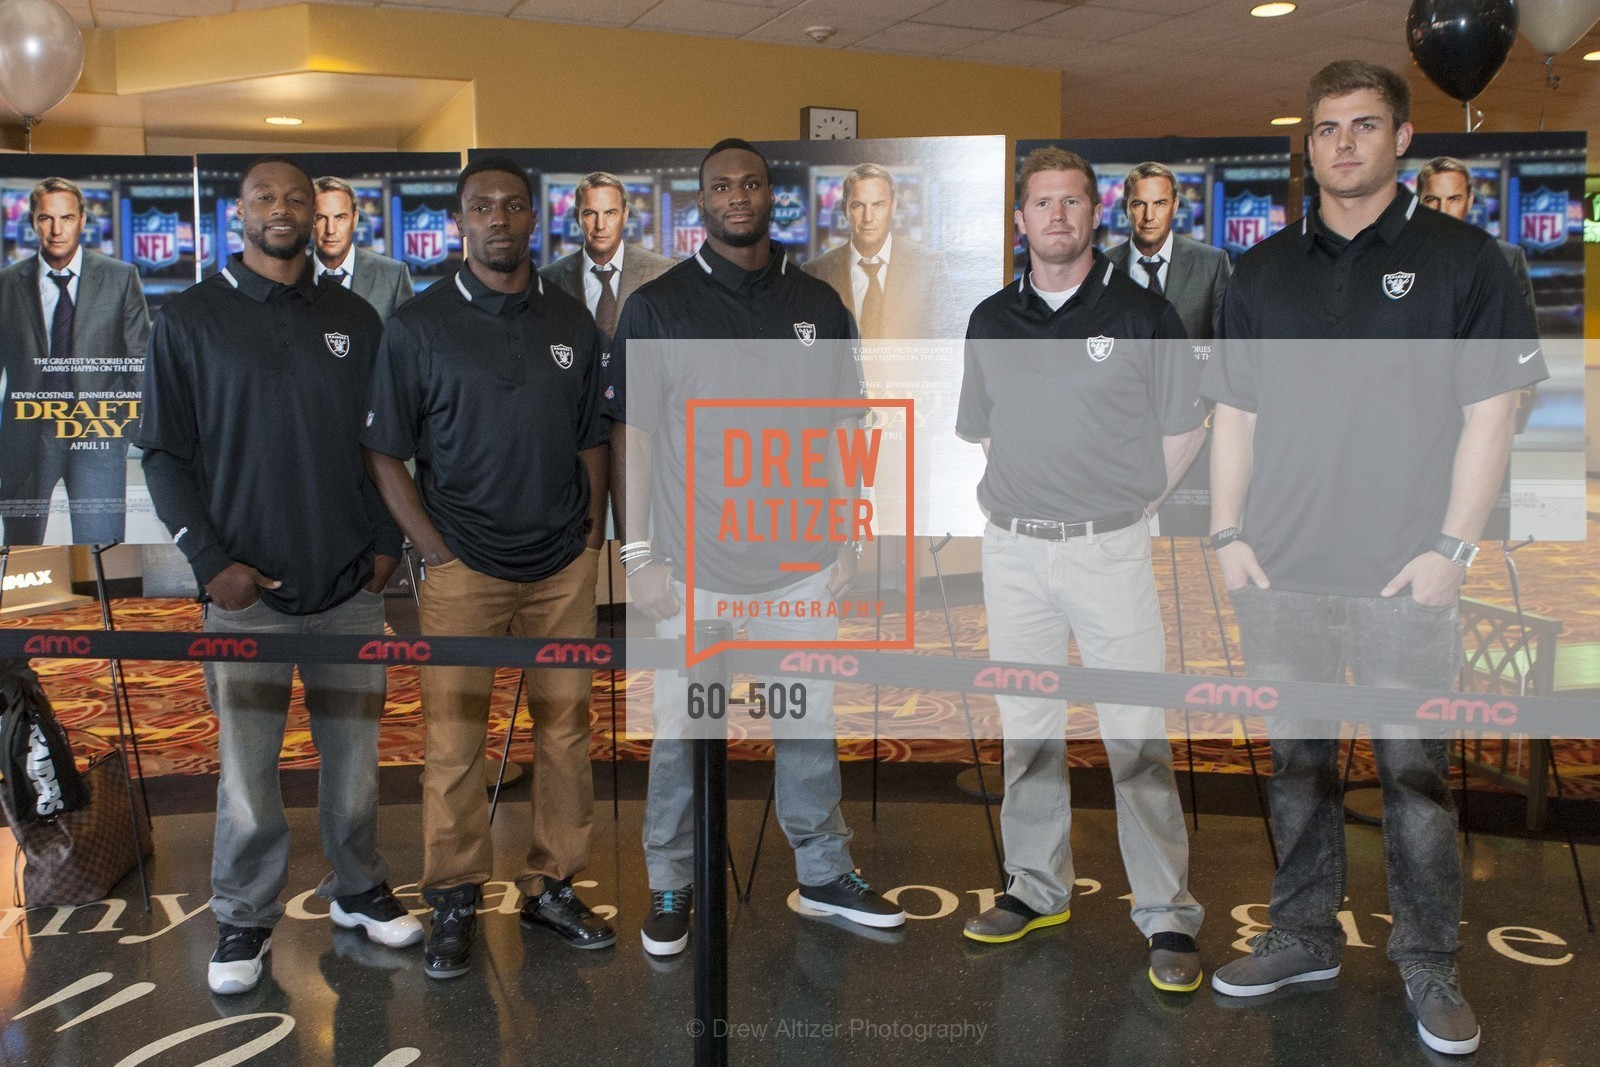 Taiwan Jones, Chimdi Chekwa, Latavius Murray, Matthew McGloin, Nick Kasa, SUMMIT ENTERTAINMENT Presents a Special Screening of DRAFT DAY with the Oakland Raiders, US. AMC 16 Shellmound, Emeryville, Ca, April 9th, 2014,Drew Altizer, Drew Altizer Photography, full-service event agency, private events, San Francisco photographer, photographer California